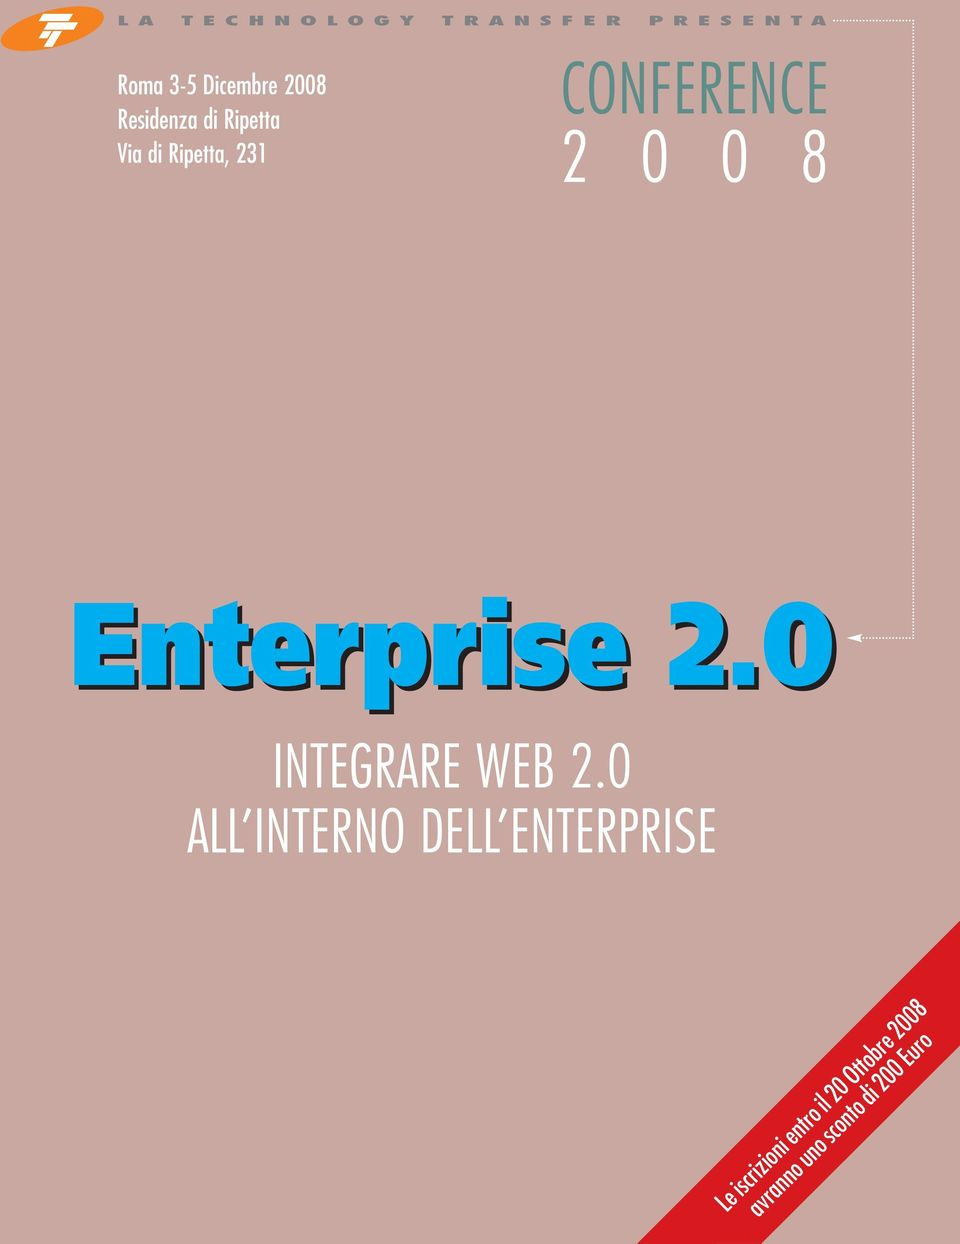 Enterprise 2.0 INTEGRARE WEB 2.